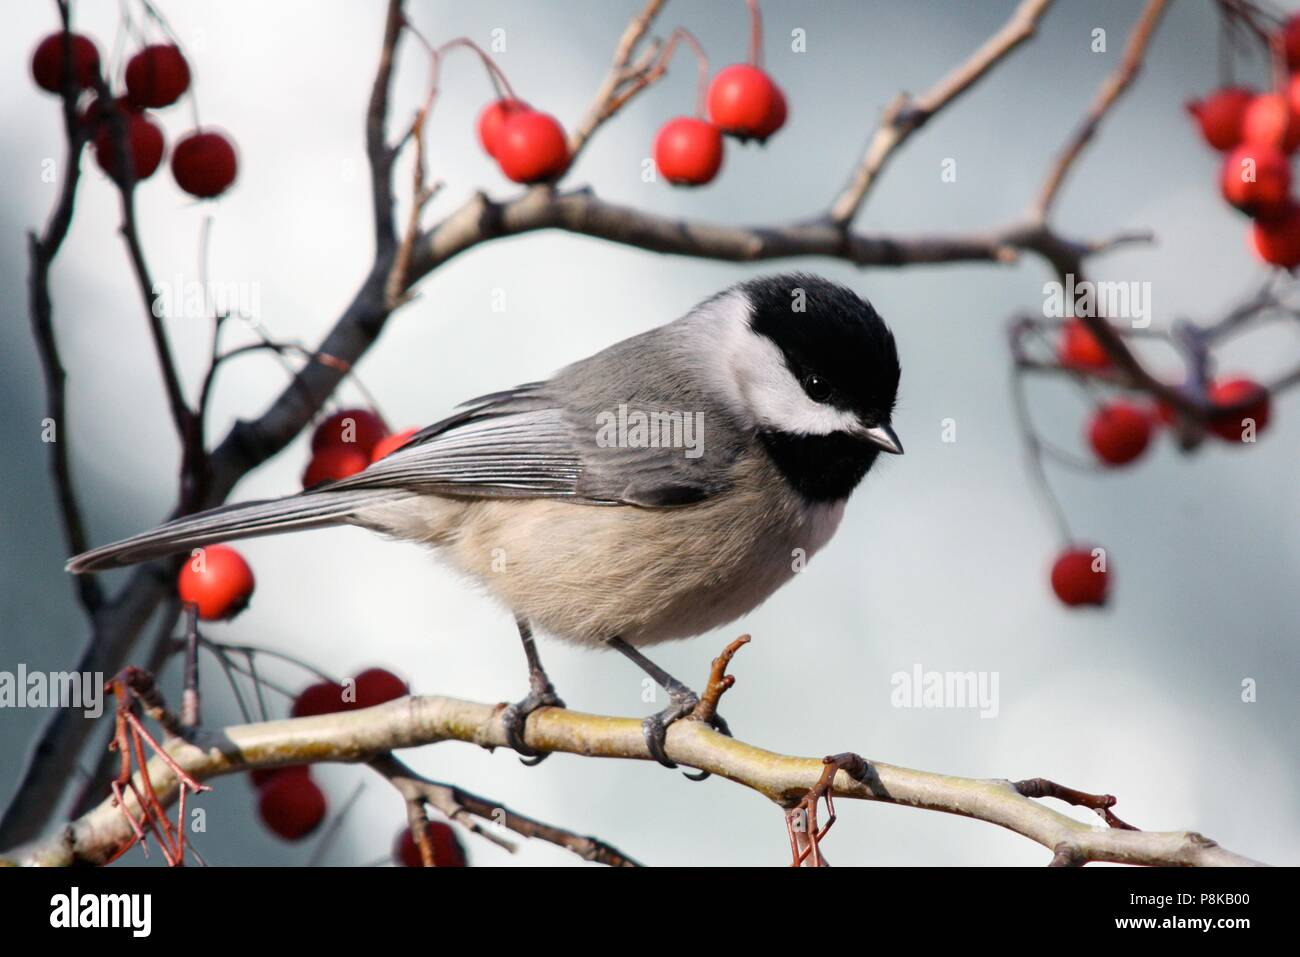 A Carolina Chickadee glances my way on a branch surrounded by dry red berries before taking flight. - Stock Image